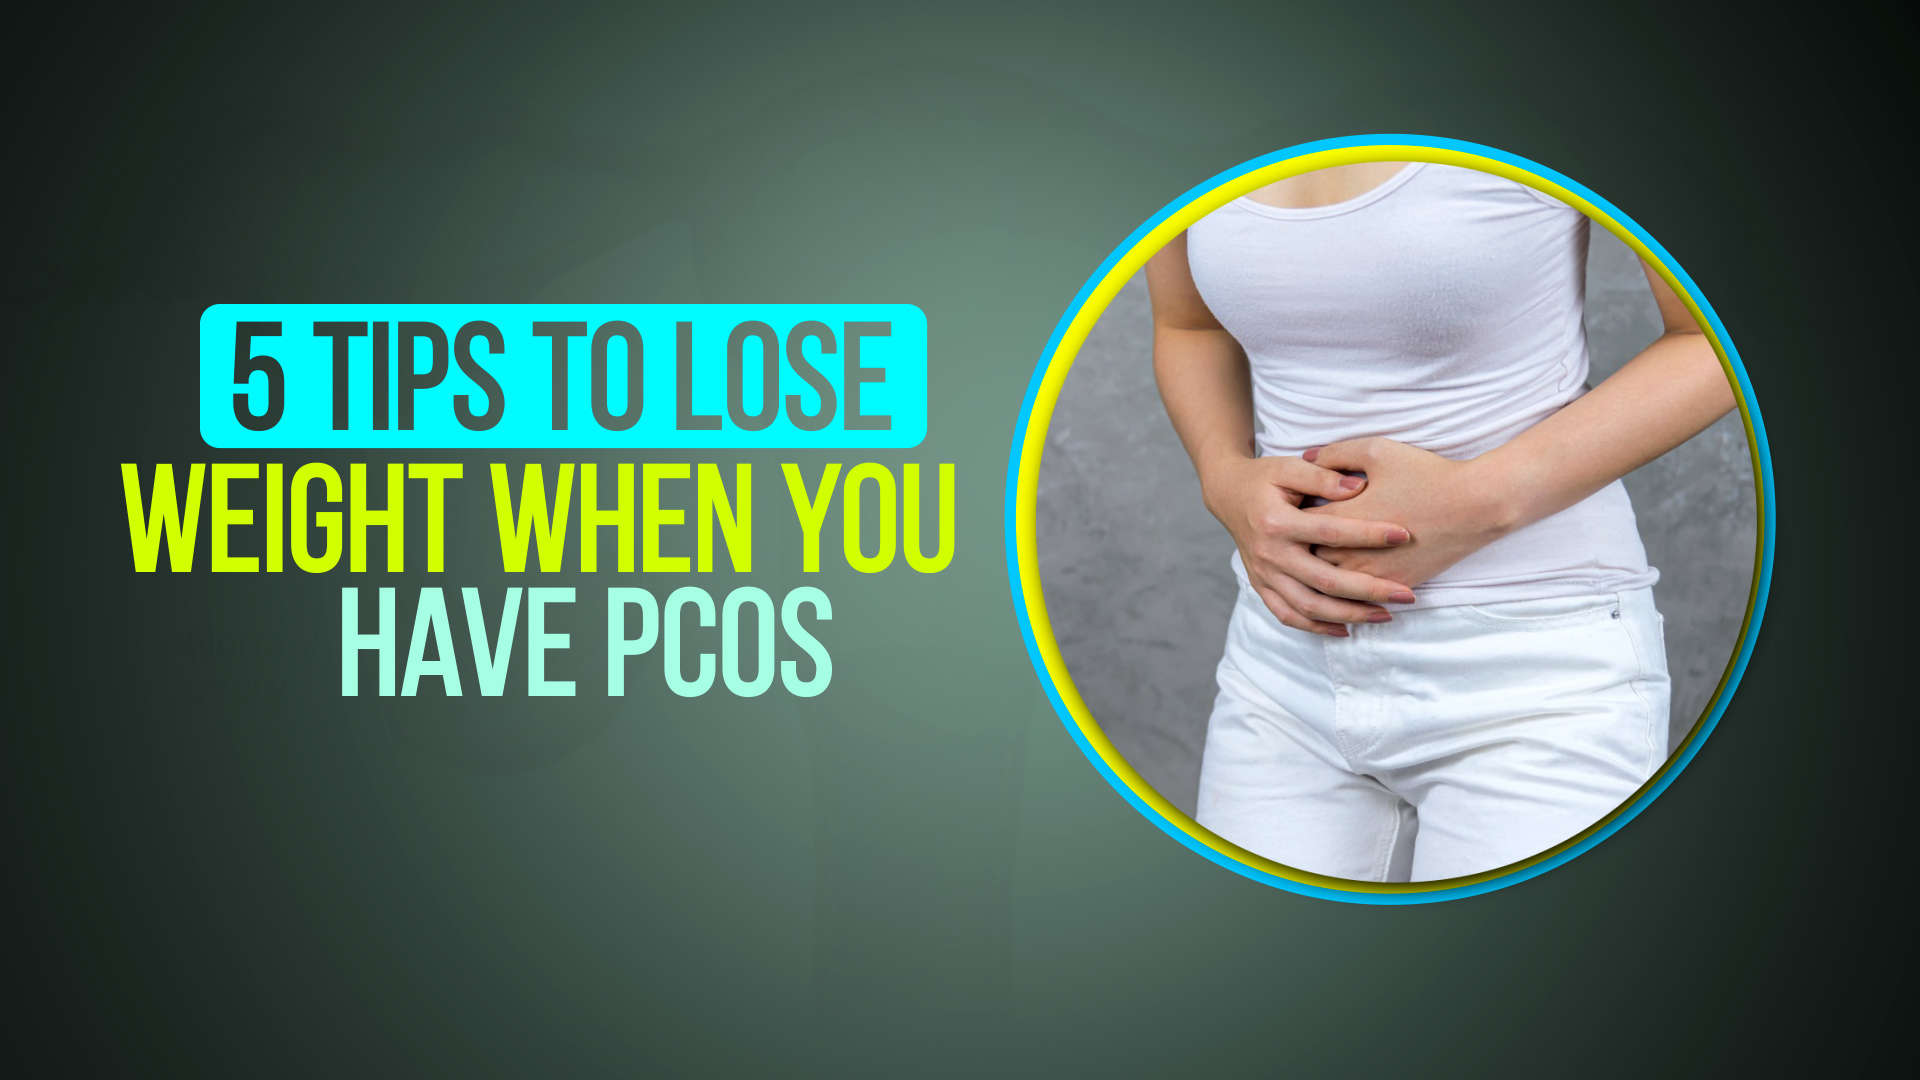 5-tips-to-lose-weight-when-you-have-pcos